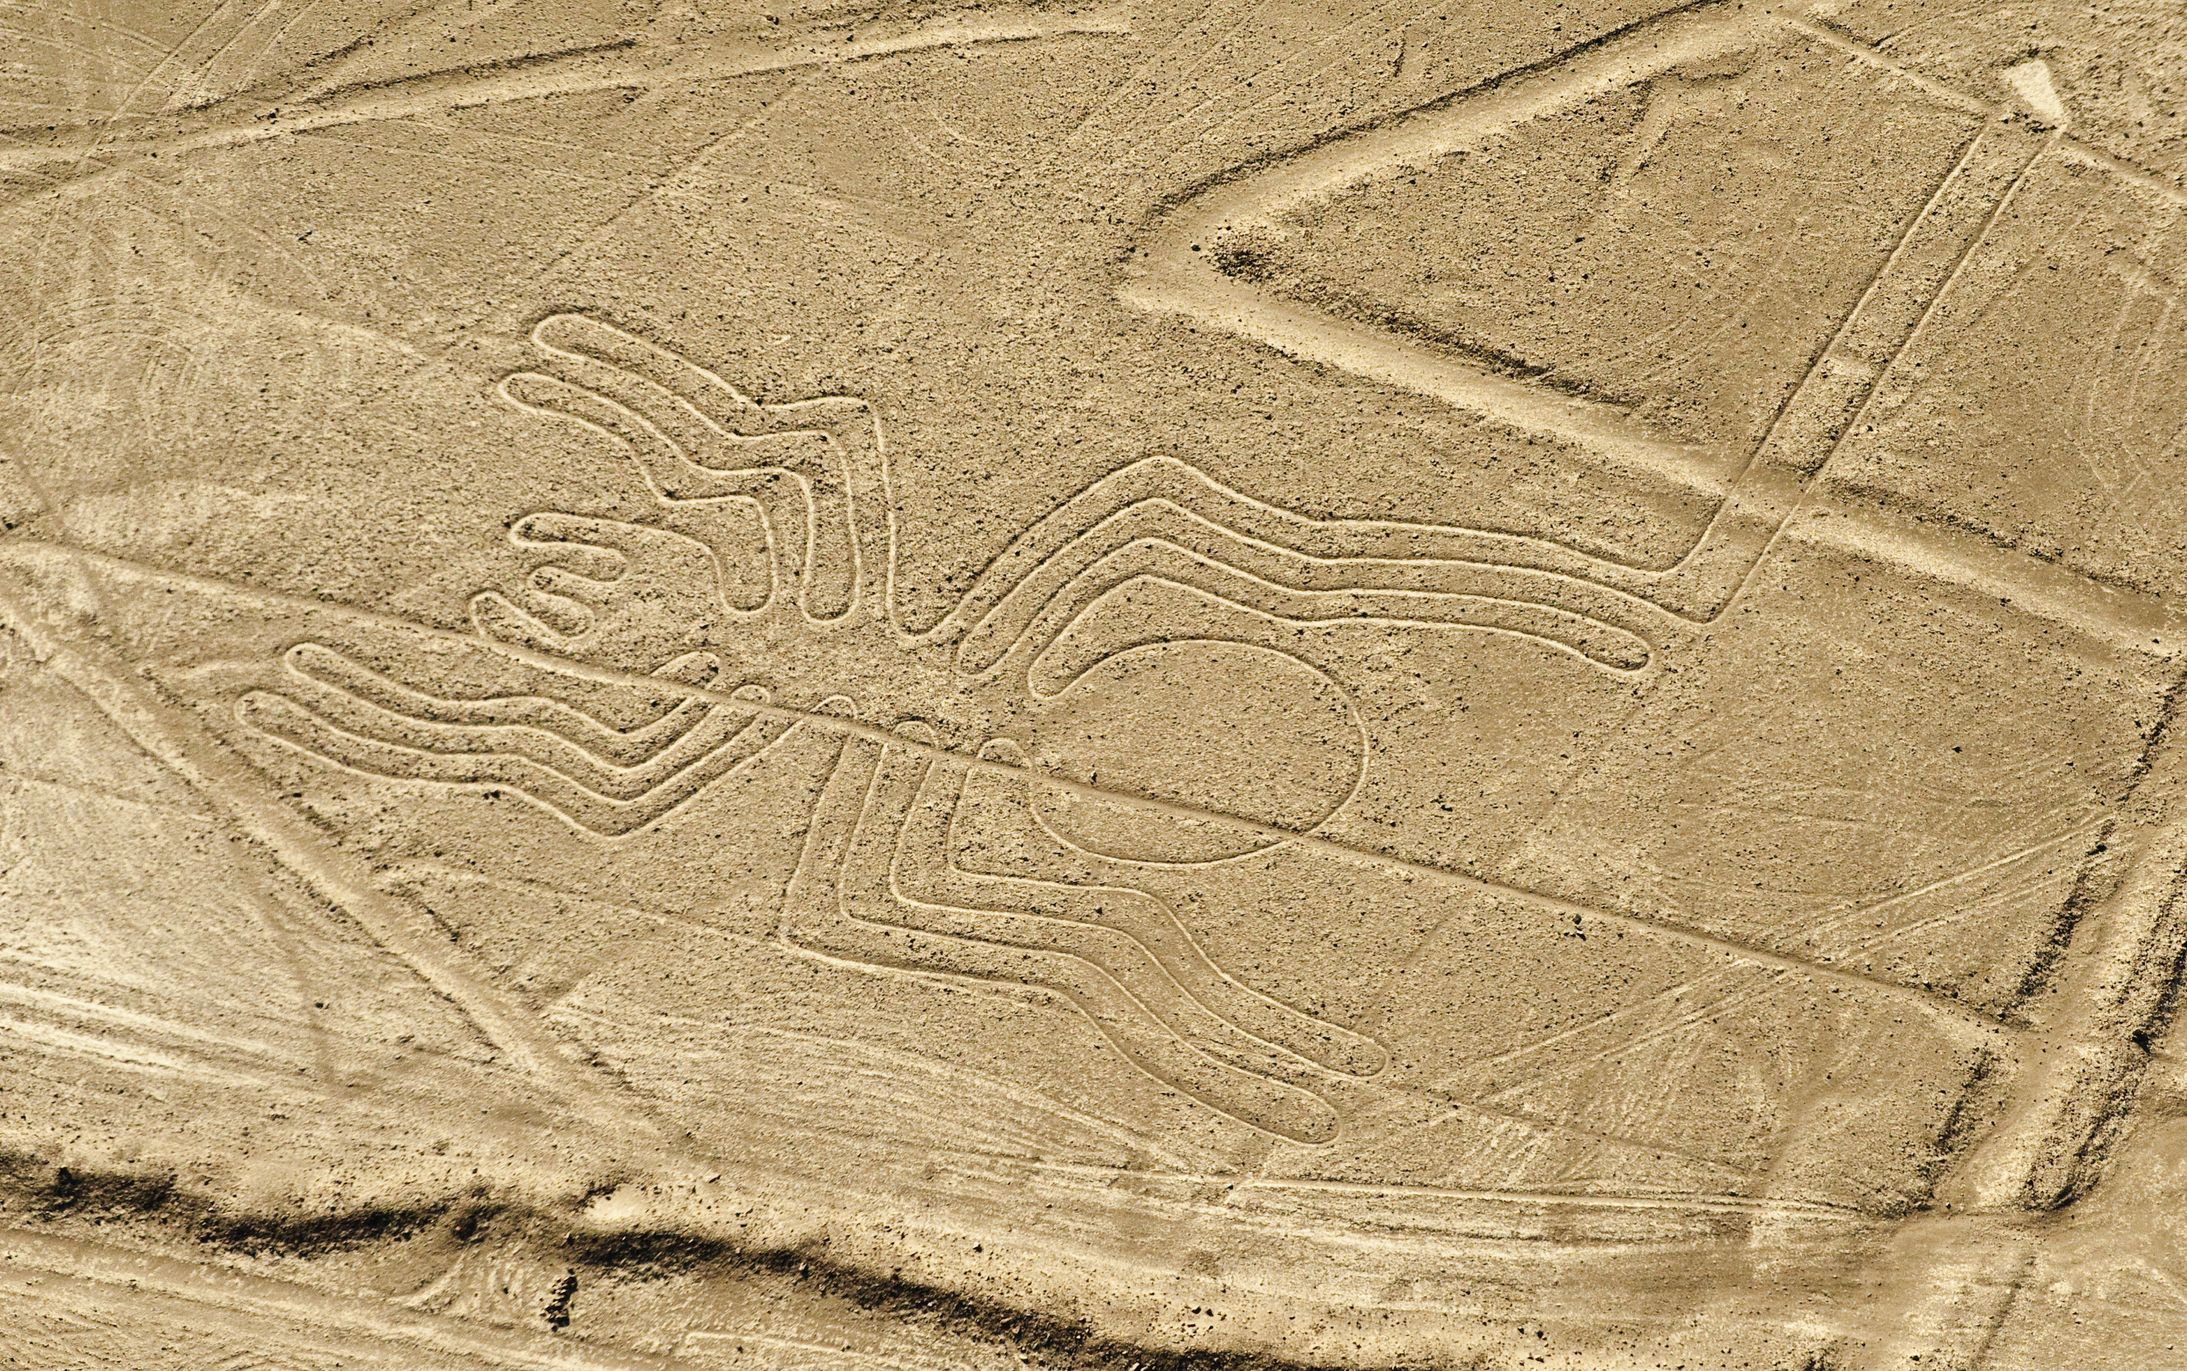 AI Discovered Nazca Lines That've Been Lost for 2,000 Years